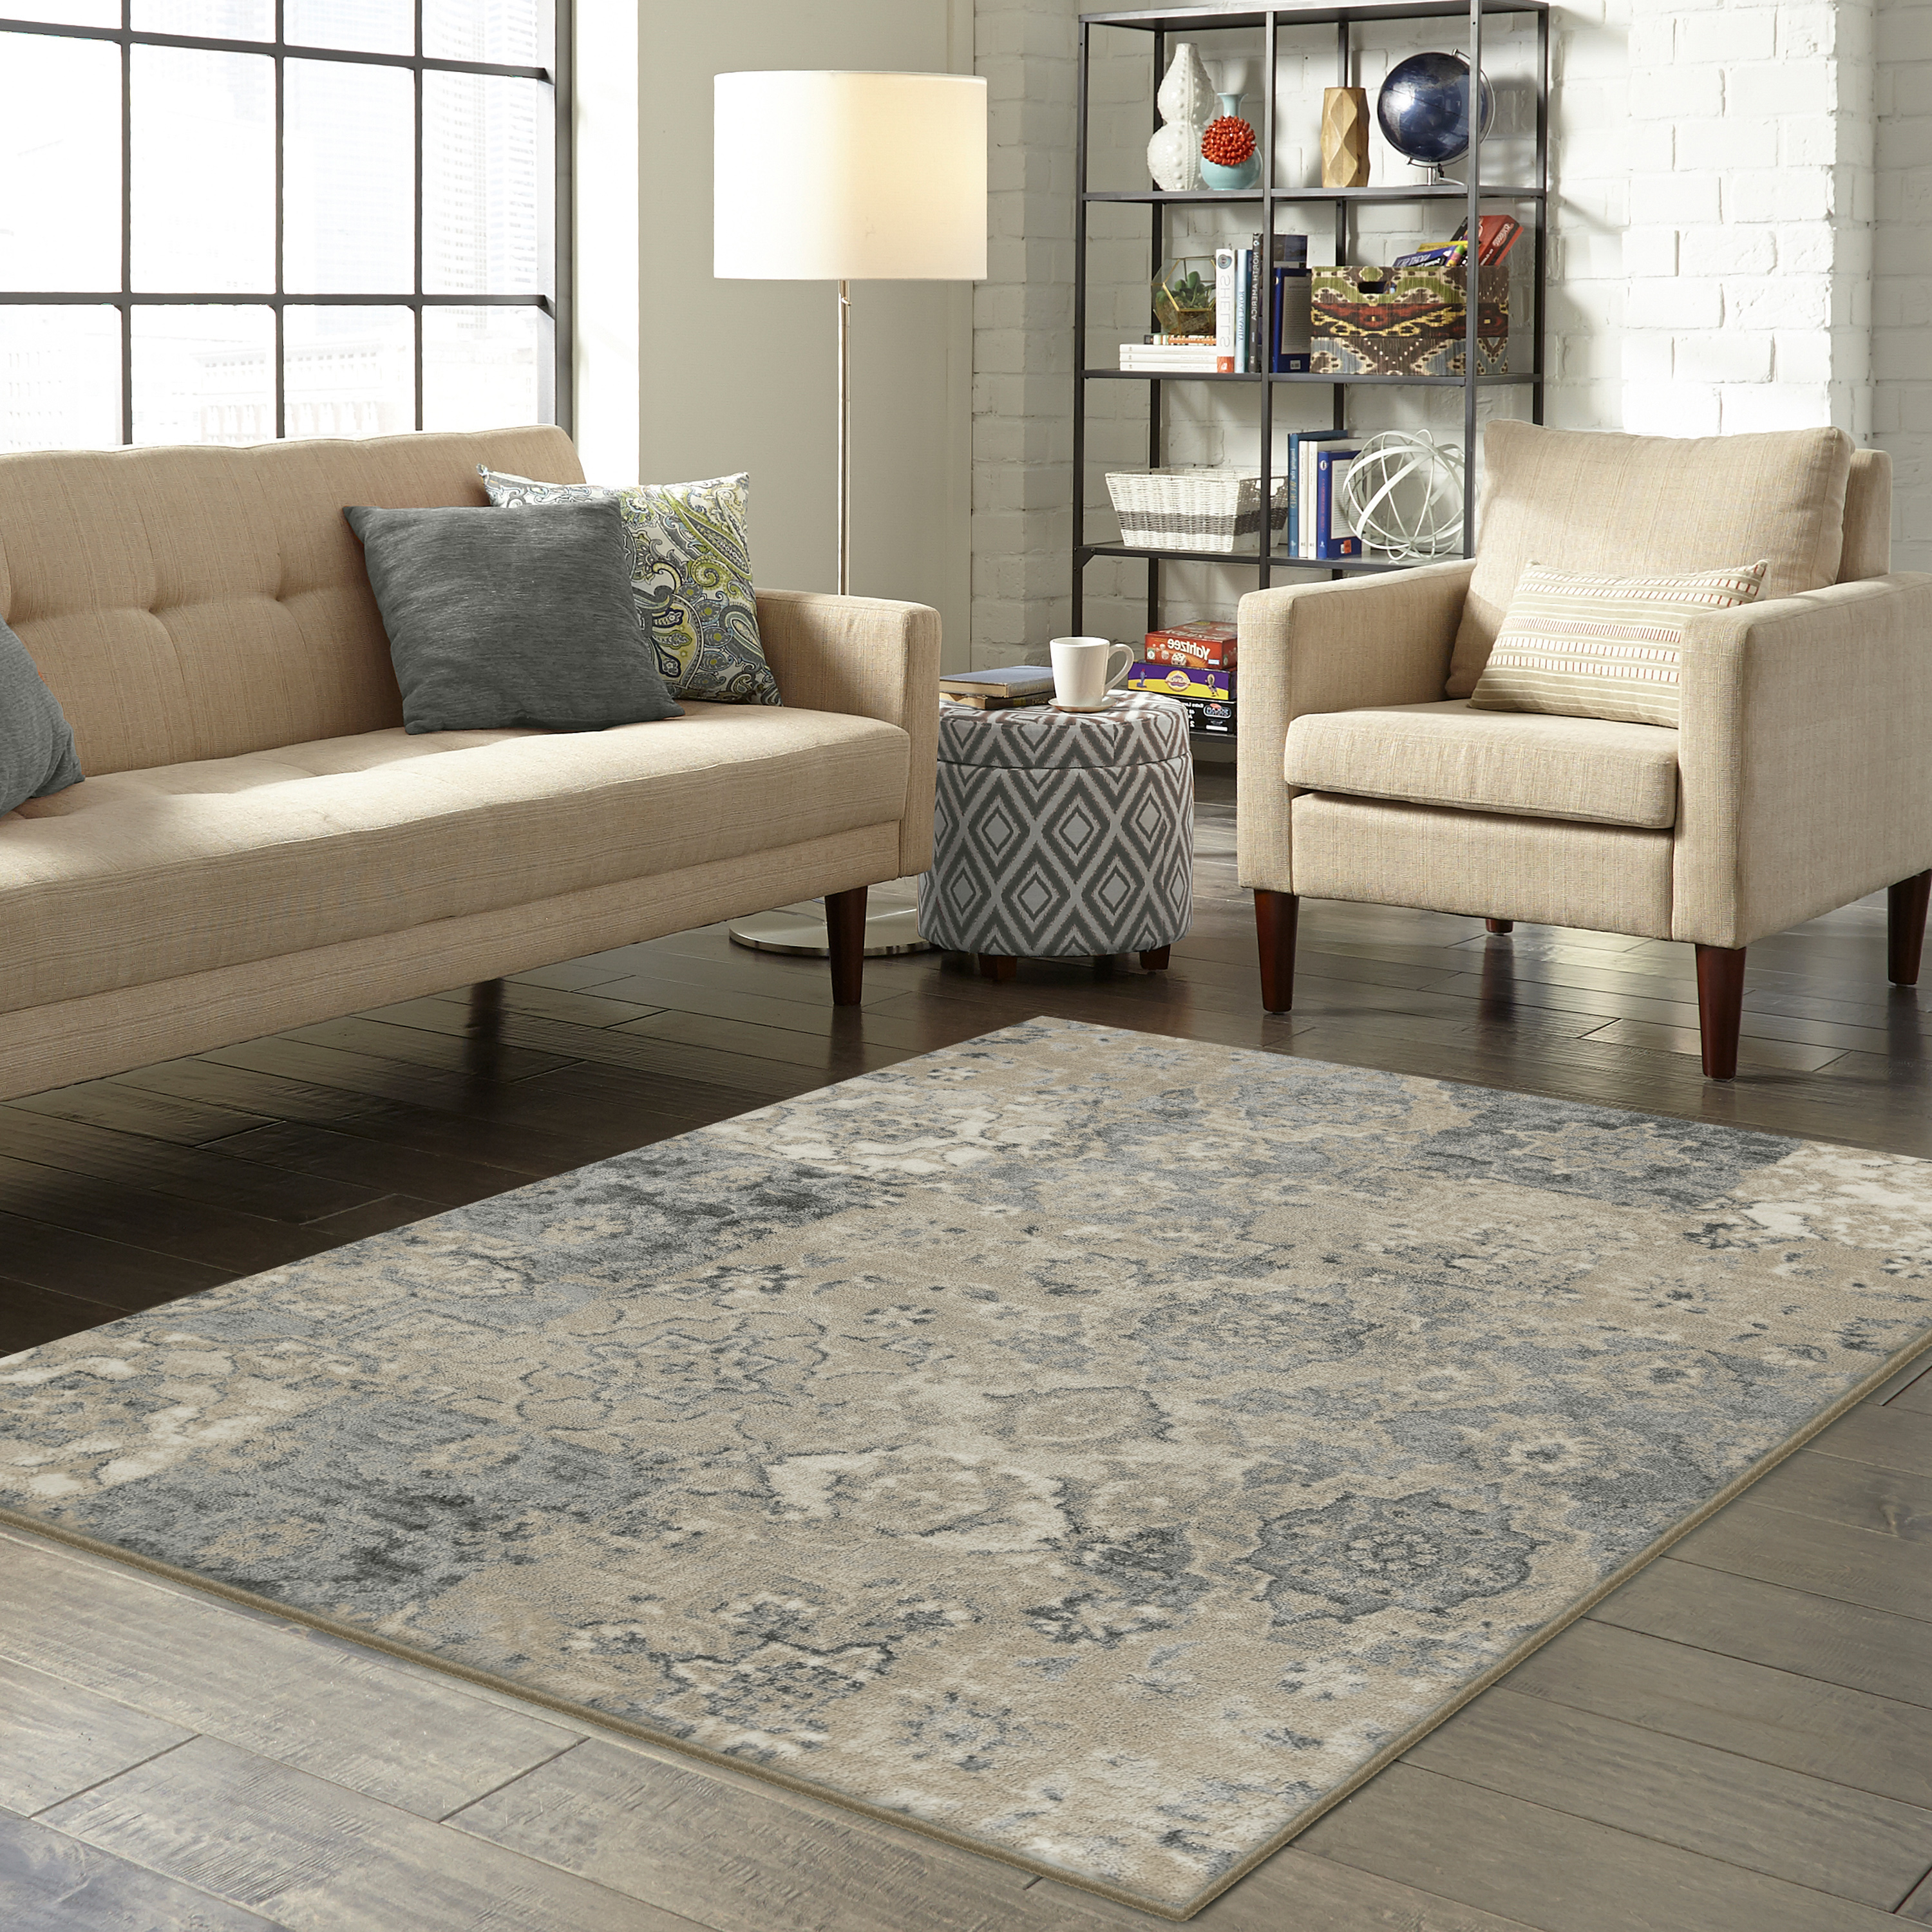 Better Homes and Gardens Distressed Patchwork Area Rug or Runner